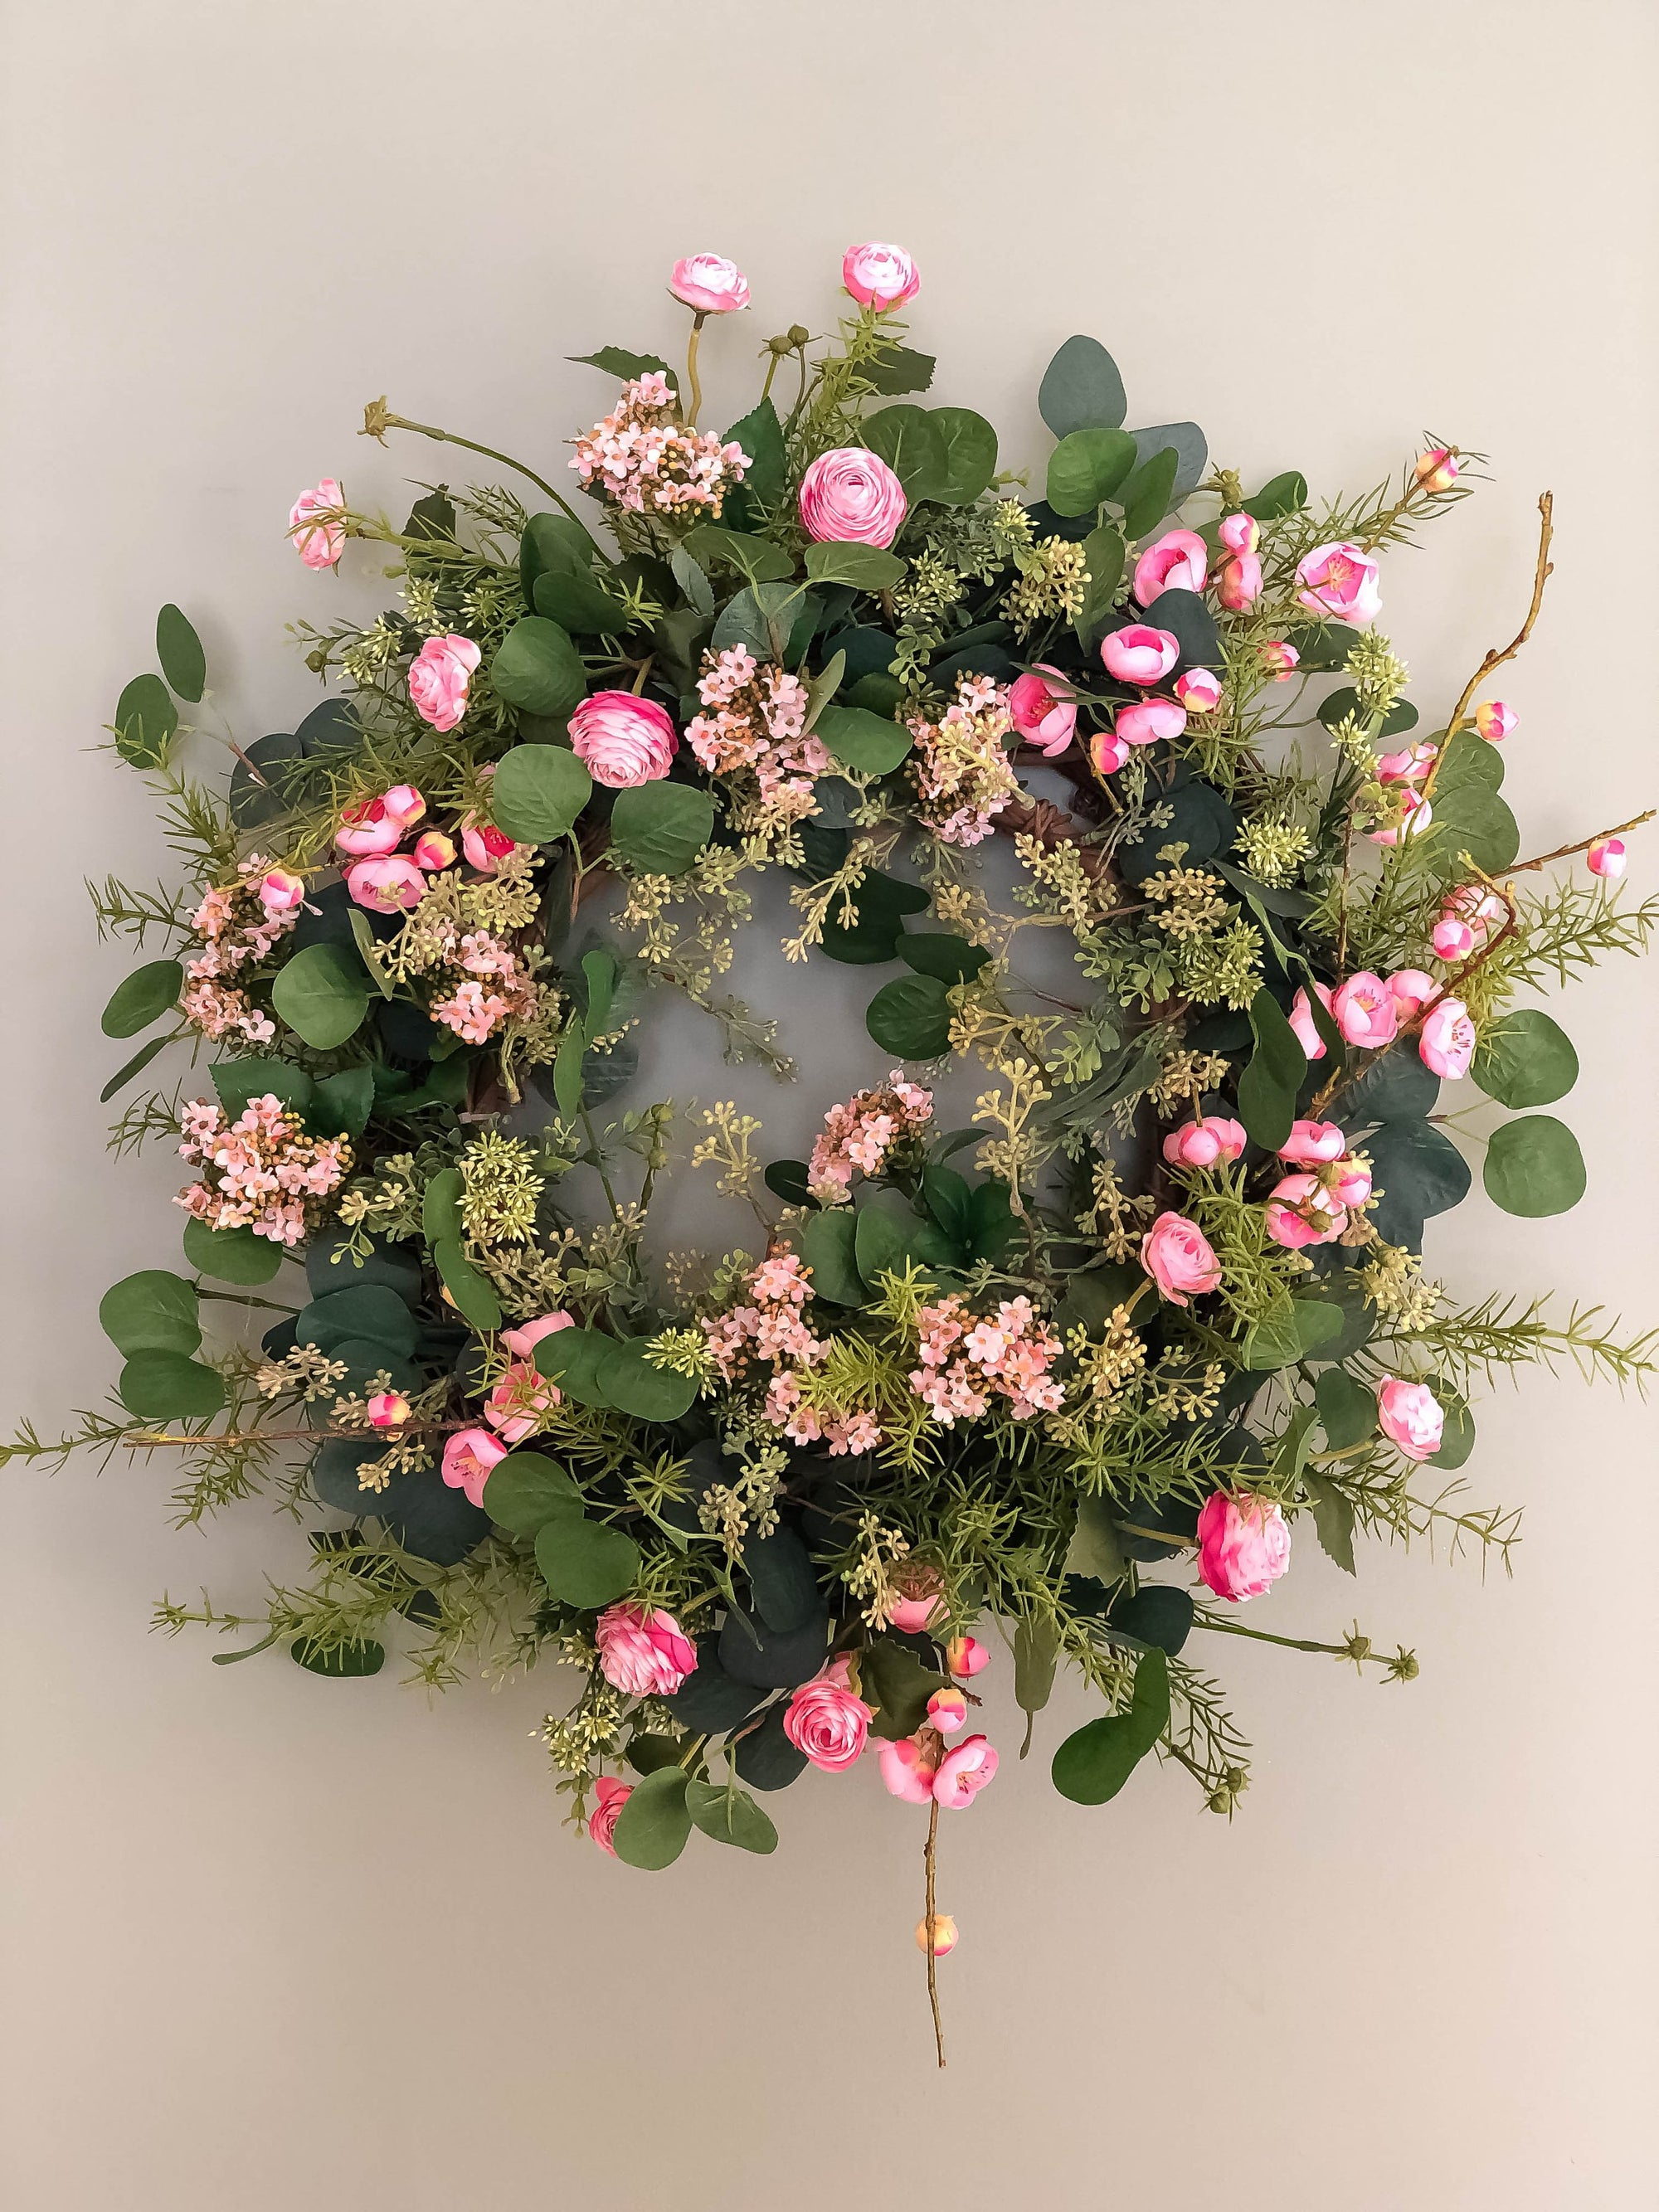 The Amaya Pink Plum Blossom & Ranunculus Spring Wreath for front door~French country farmhouse decor~Easter Mothers day~Wedding decorations